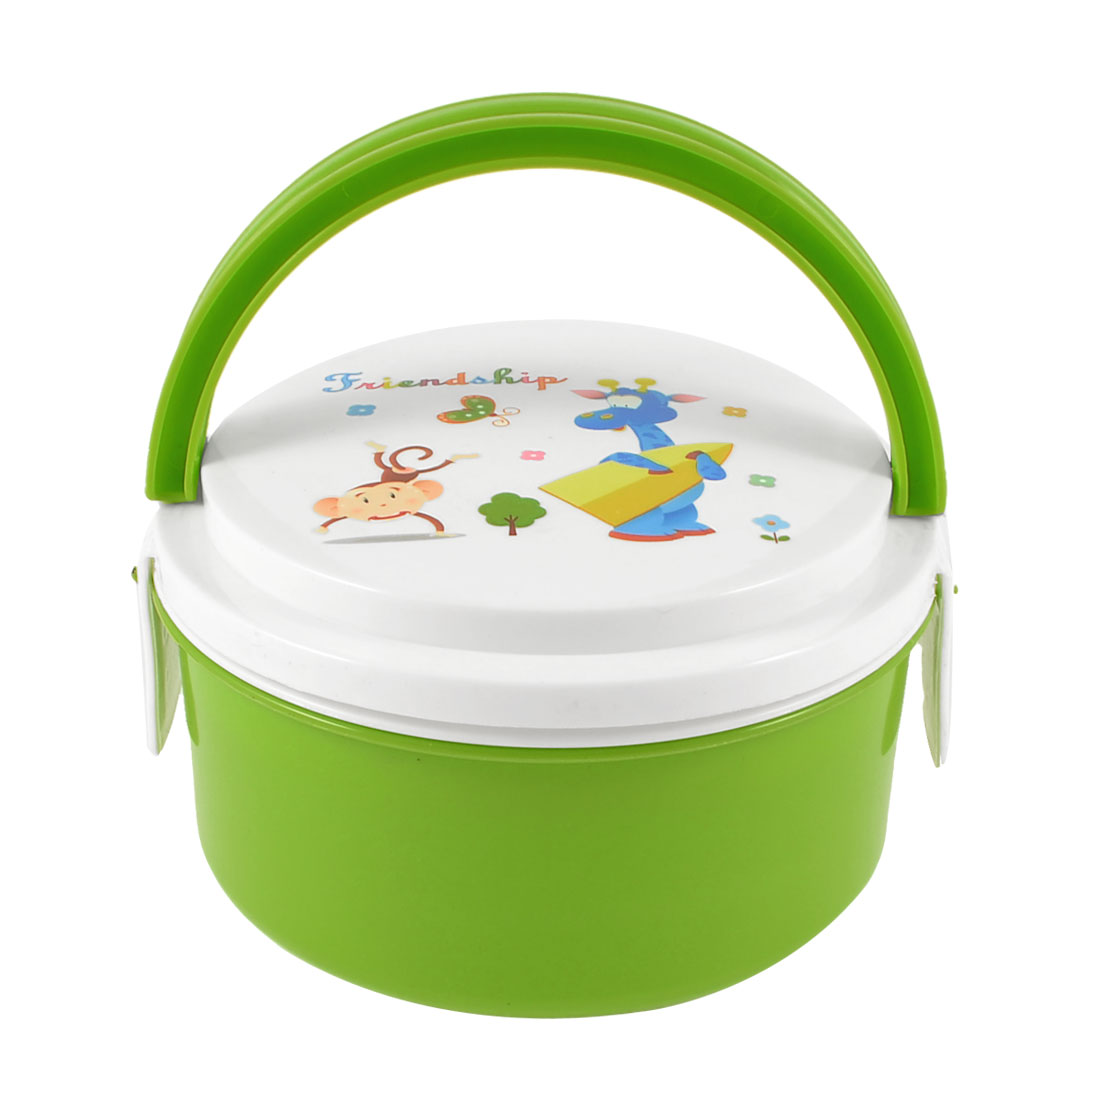 Home Kitchen Cartoon Giraffe Print 2 Layers Round Green White Lunch Box w Spoon